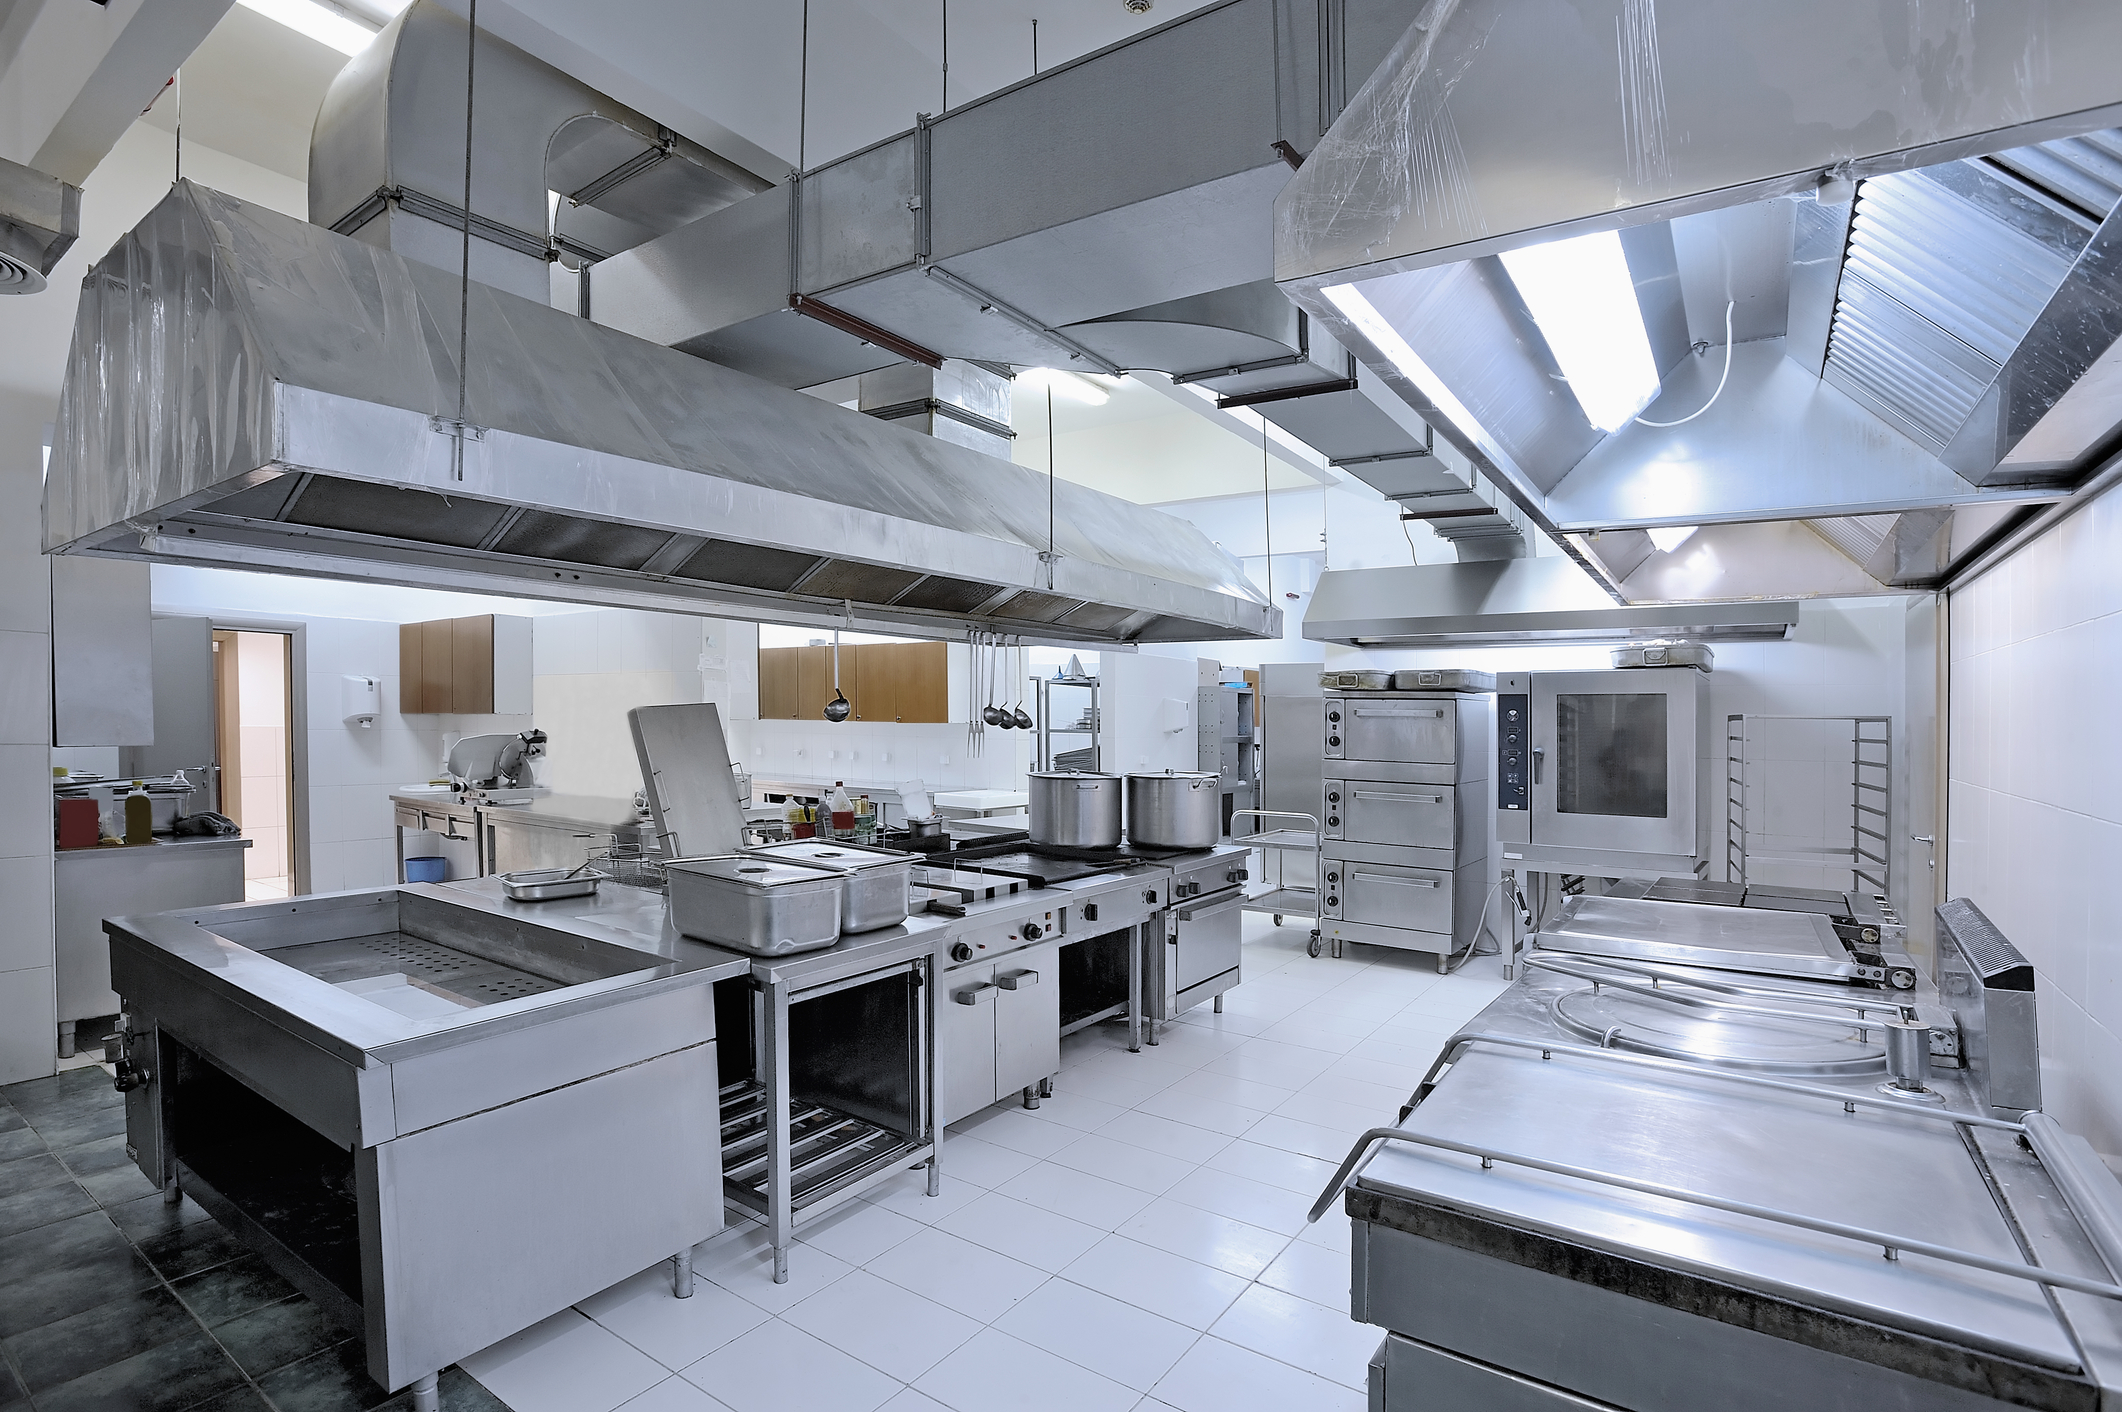 commercial kitchen design uk kitchen design best 5 important things you 232